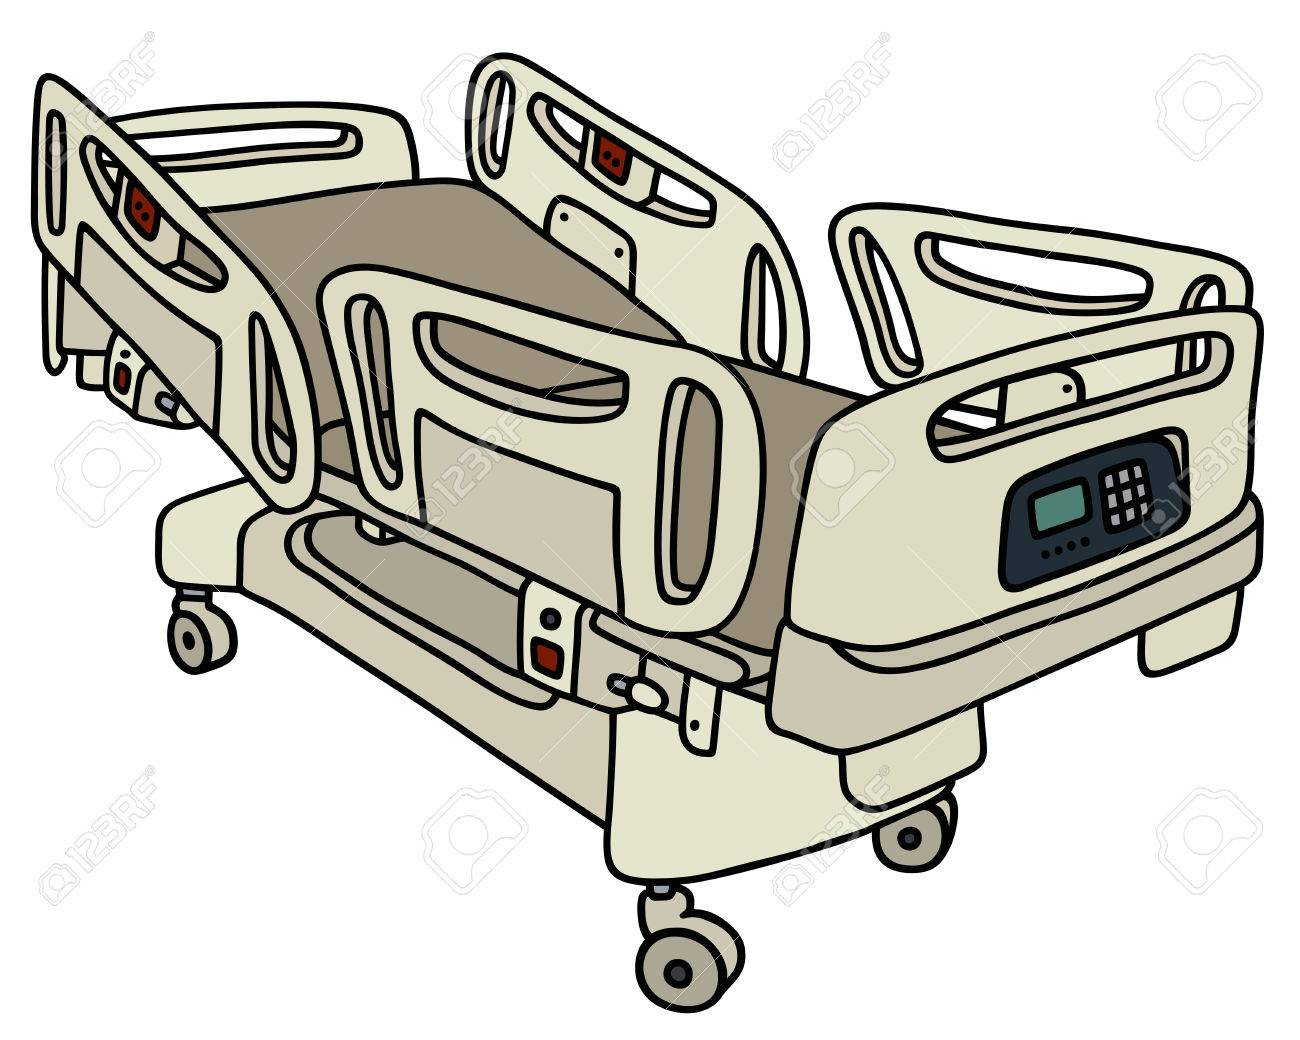 Hand Drawing Of A Hospital Position Bed Stock Vector